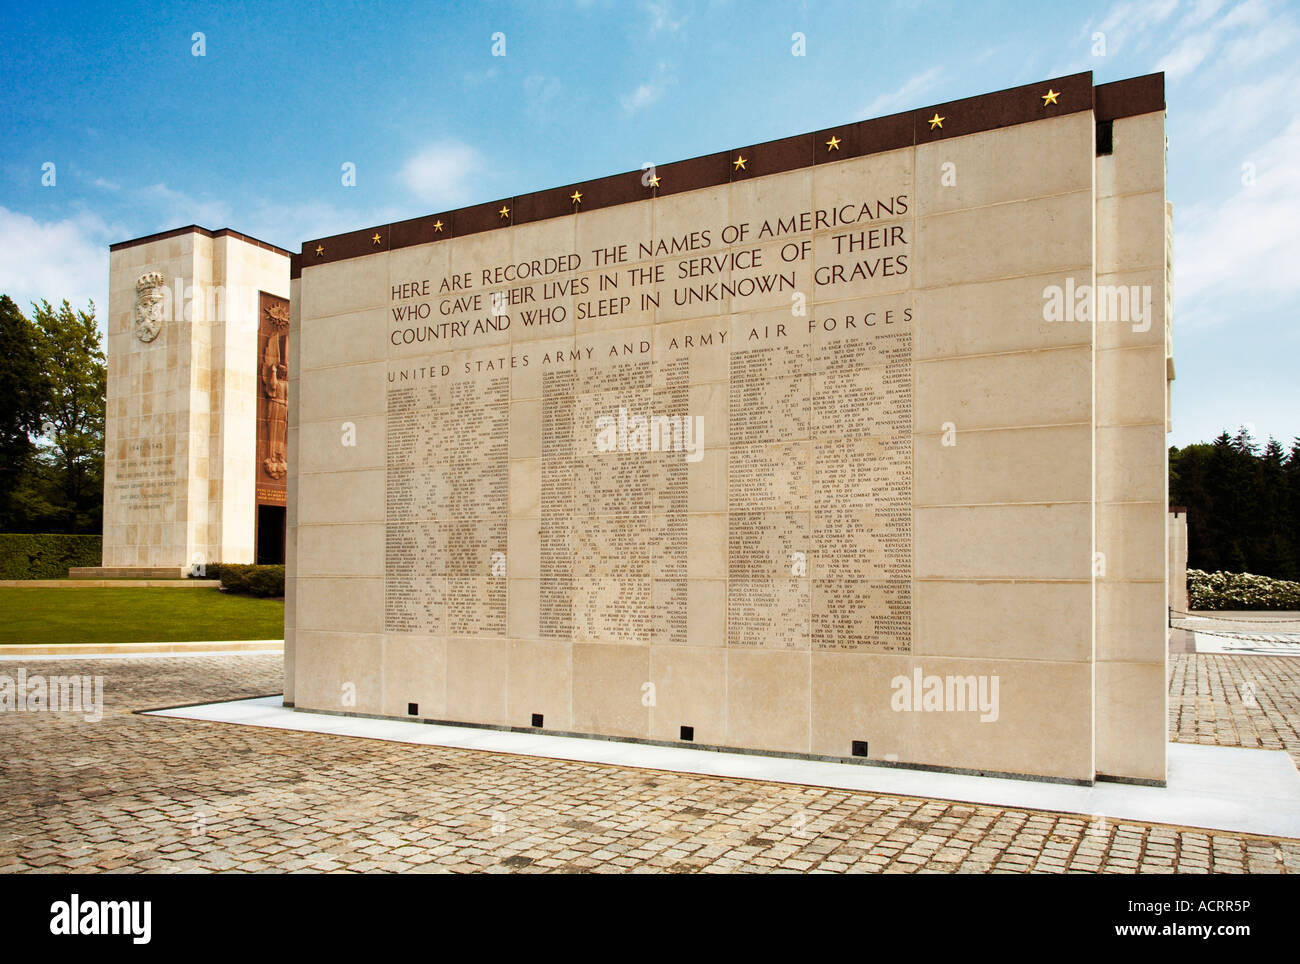 Missing in Action monument at the American Military Cemetery, Hamm, Luxembourg City - Stock Image